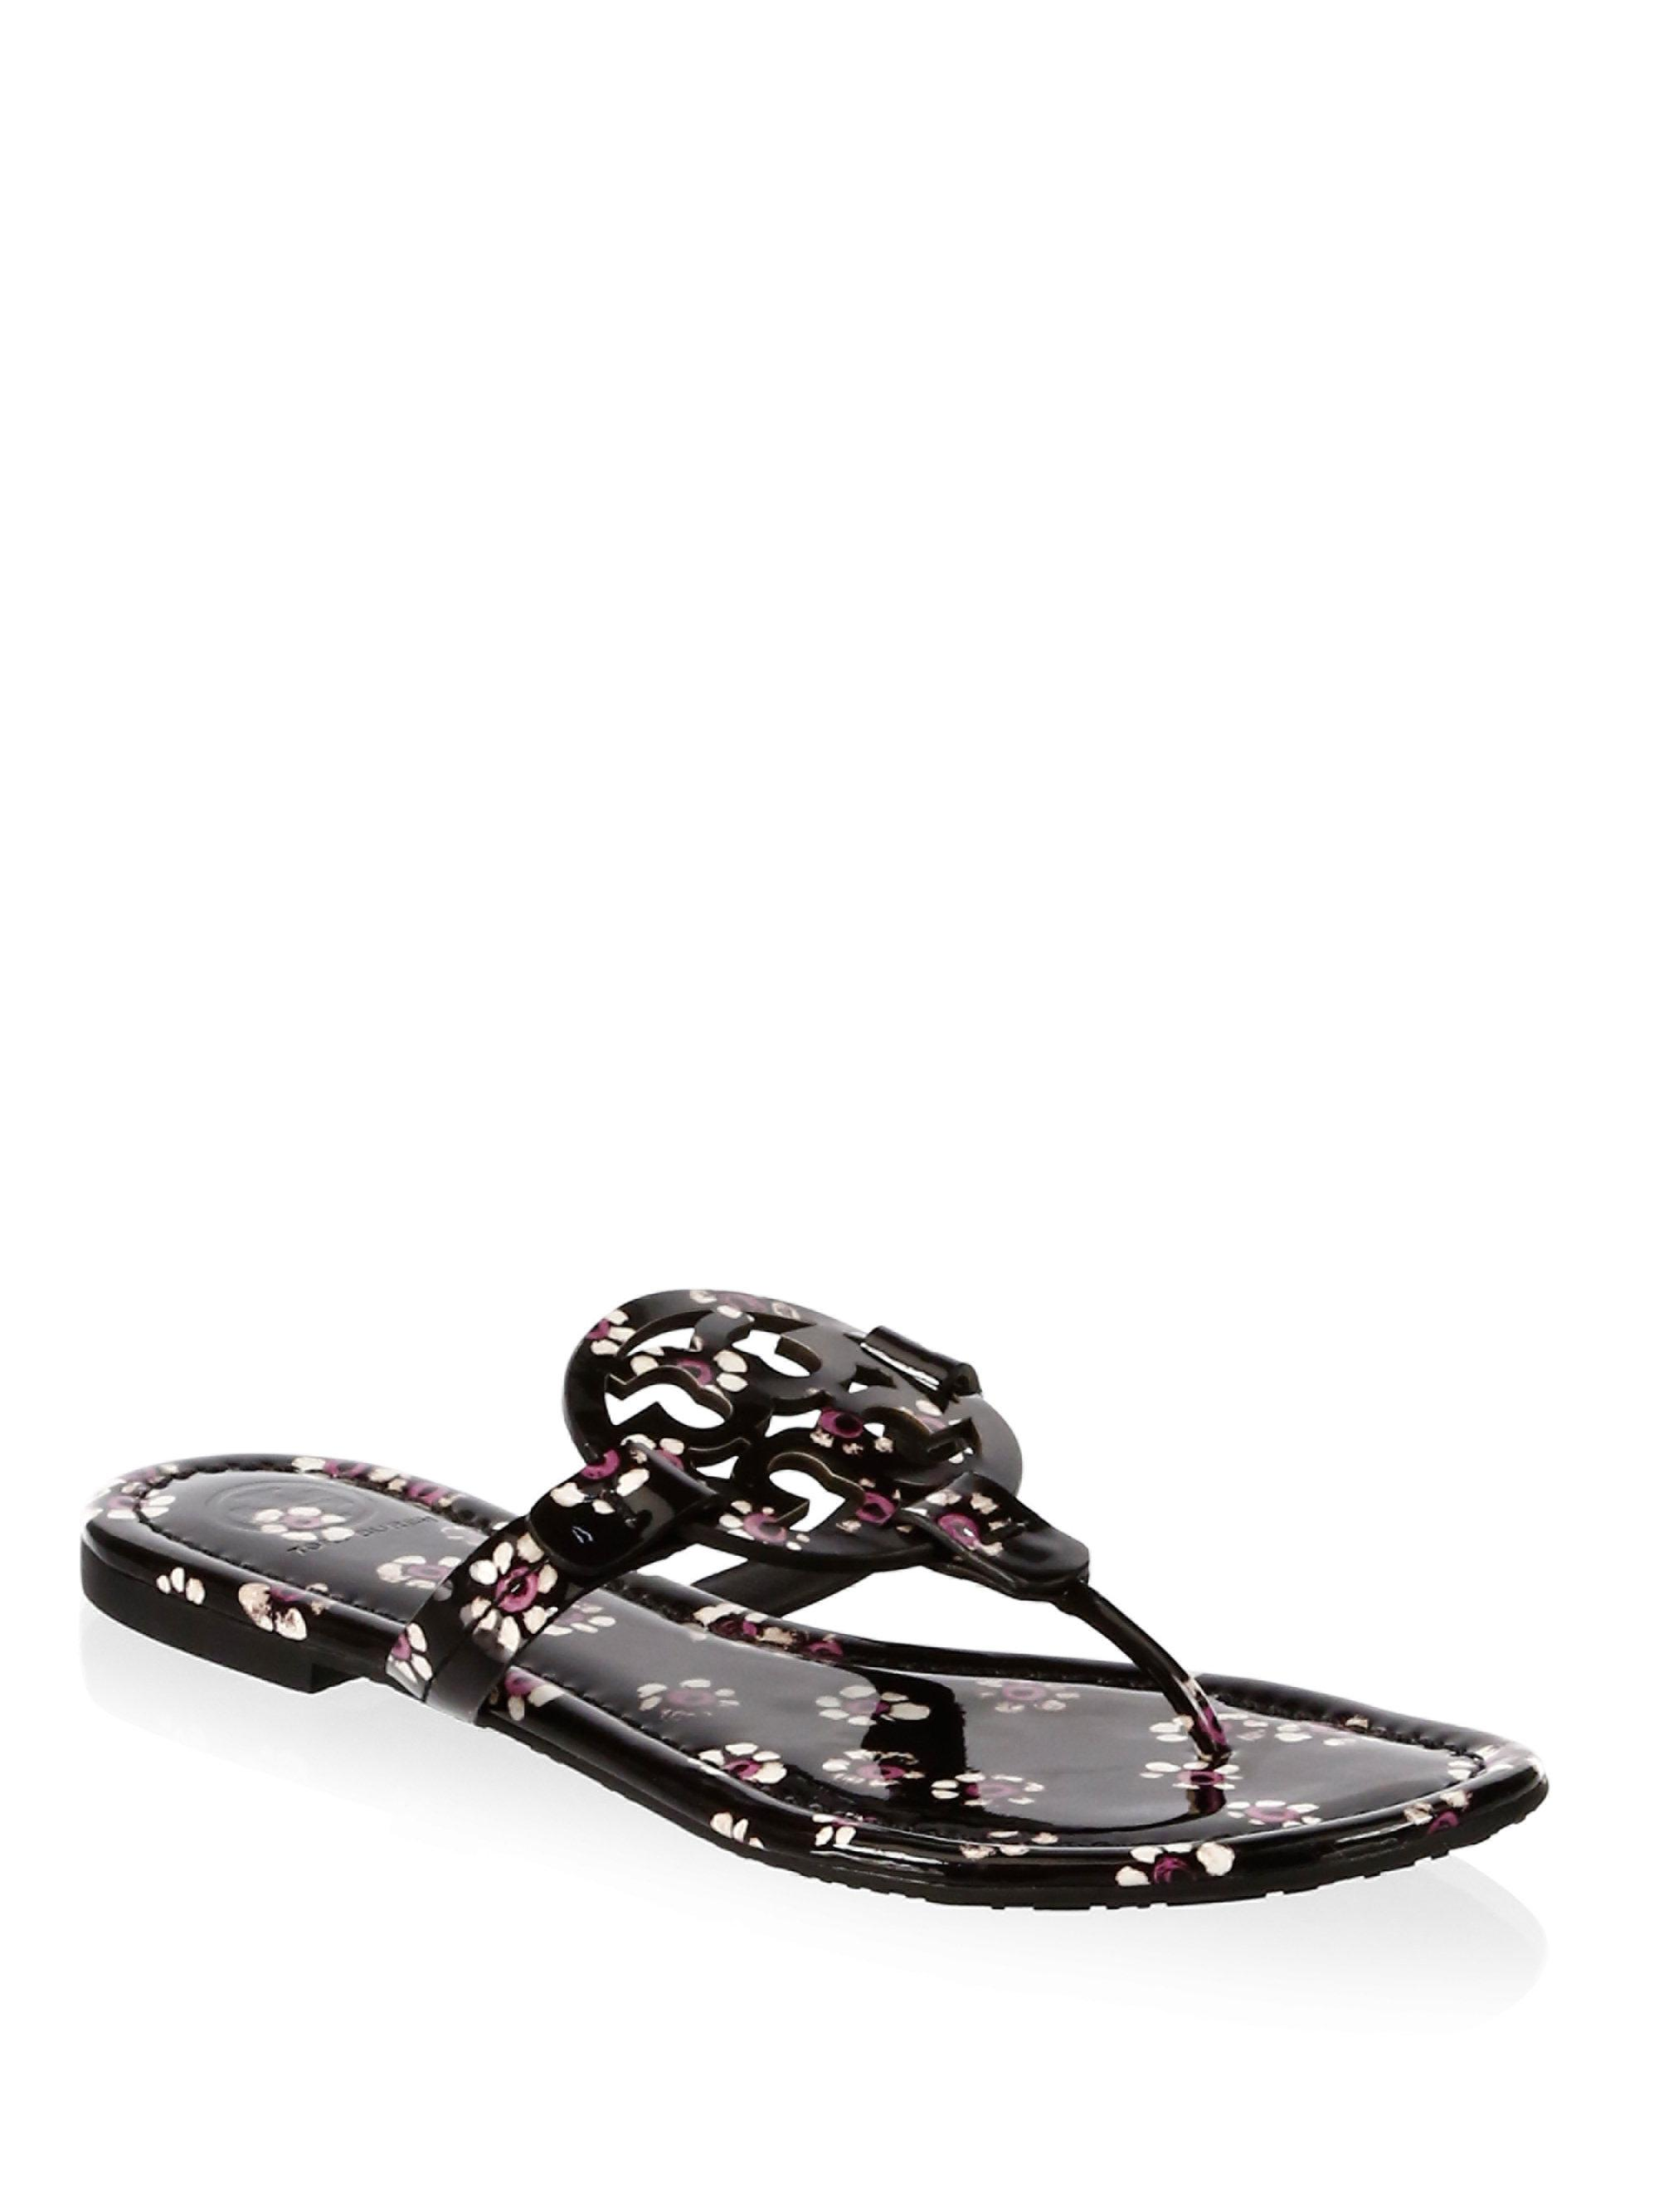 151451793353 Tory Burch Miller Floral Leather Thong Sandals in Black - Lyst